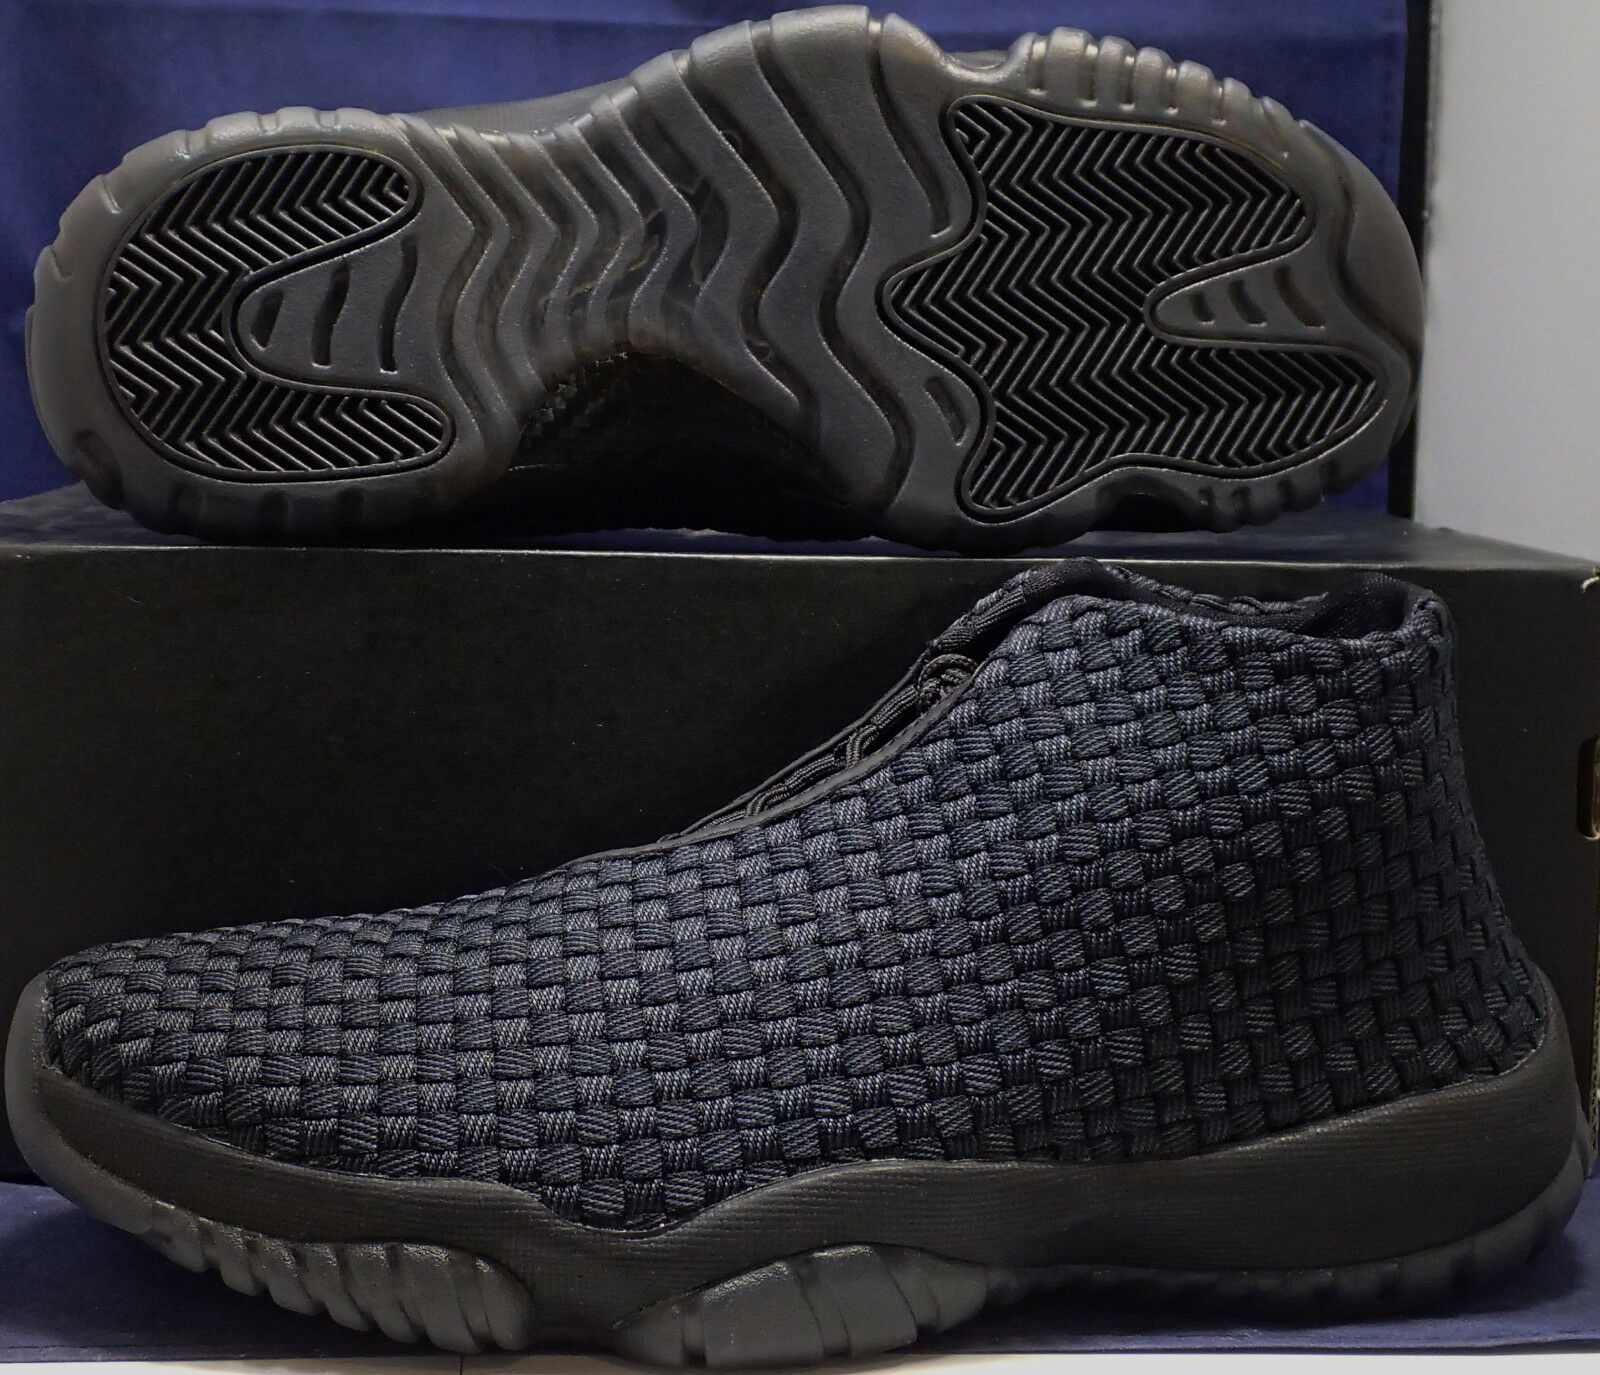 e11f49f6f6 Nike Air Jordan Future Black SZ 8 656503-001 ) Anthracite (  nztdeh336-Athletic Shoes